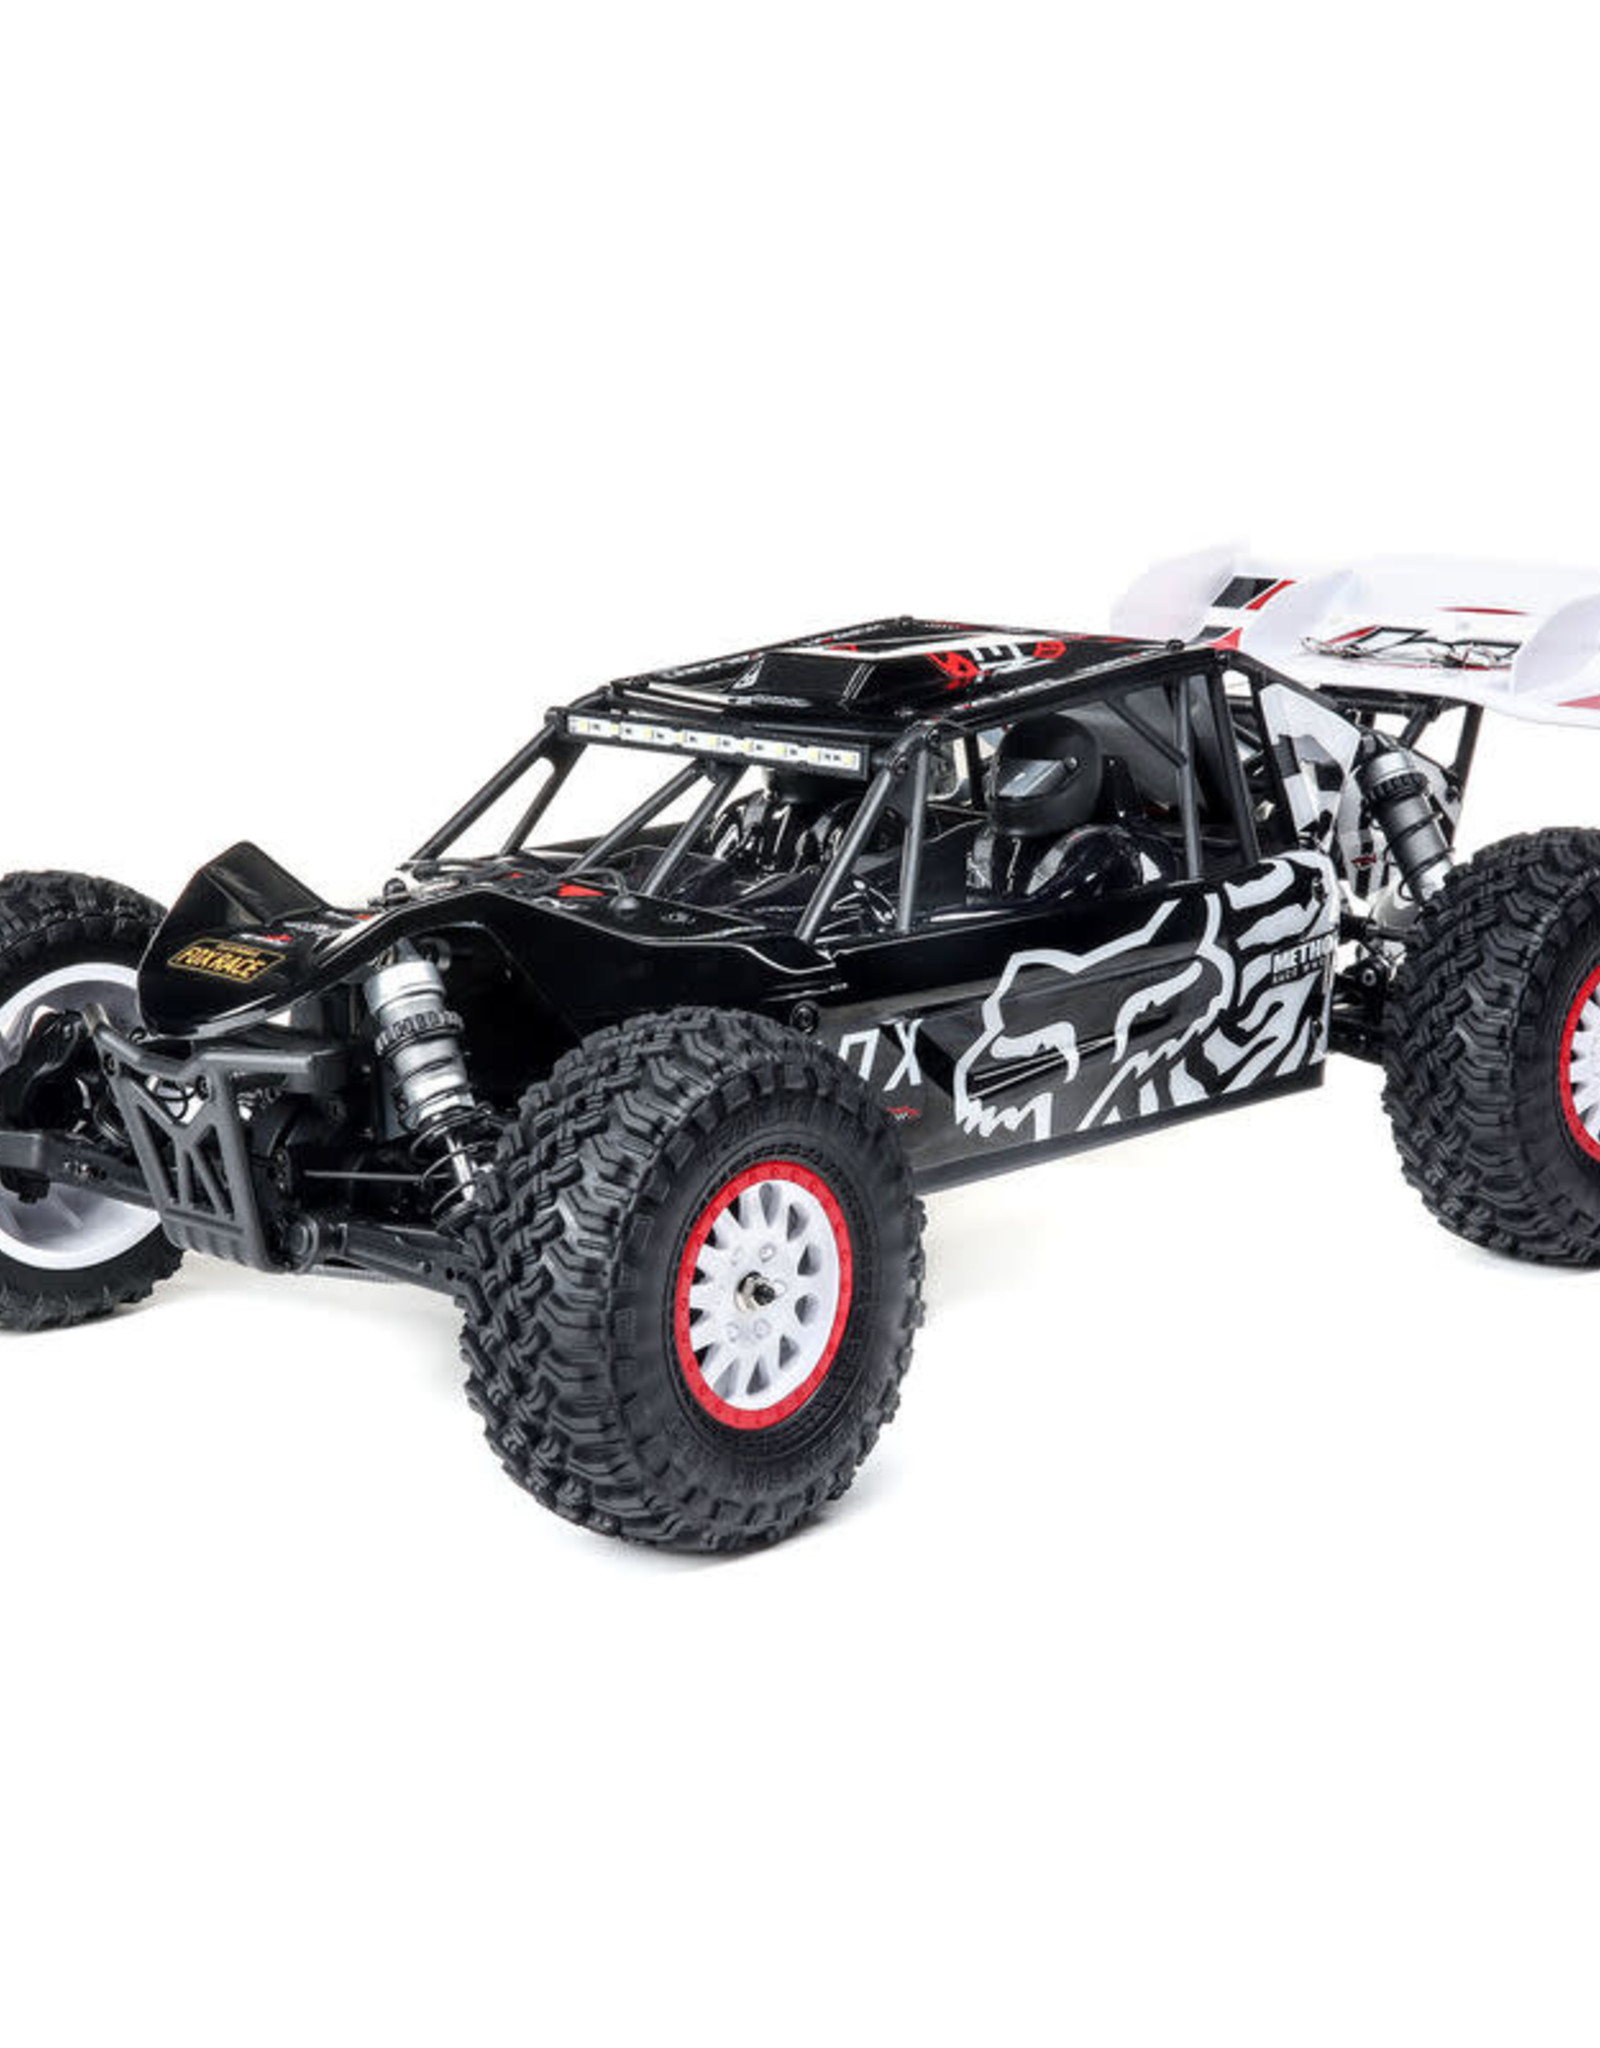 Losi LOS03027T2 1/10 Tenacity DB Pro 4WD Desert Buggy Brushless RTR with Smart, Fox Racing